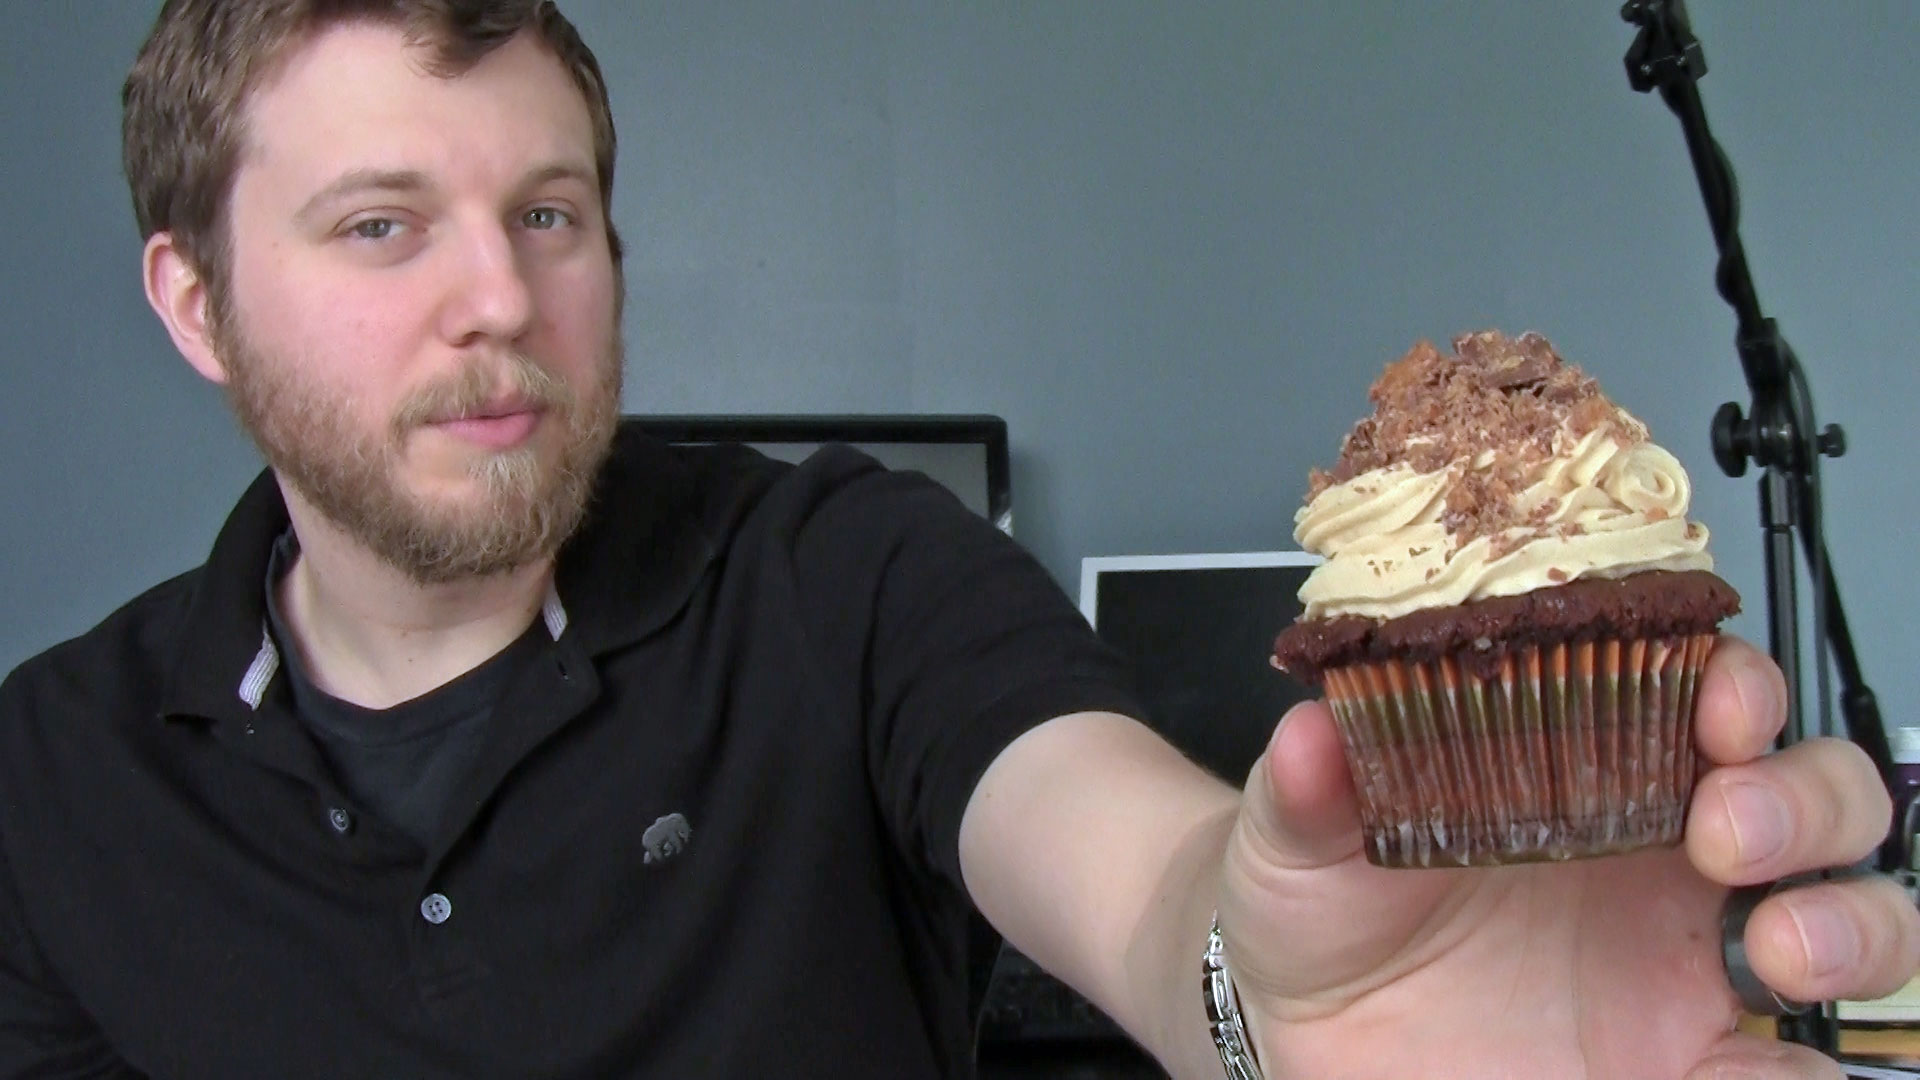 Welcome to my site, have a cupcake!